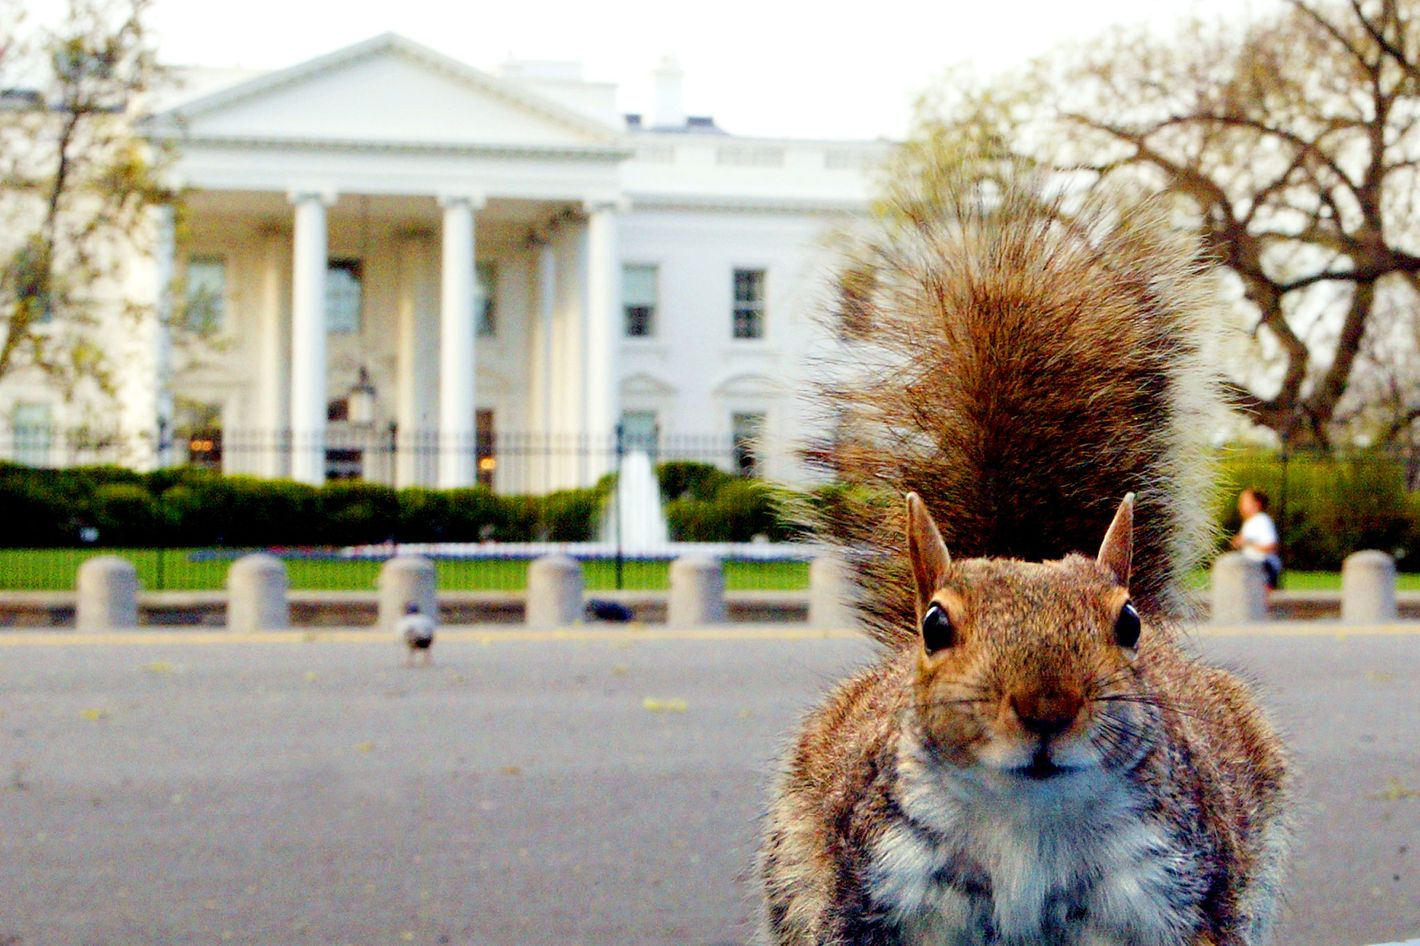 A hungry ground squirrel that looks pretty well fed hunts for food in Lafayette Park across from the White House early 10 April, 2002 as the sun starts to rise over the Washington, DC, area.